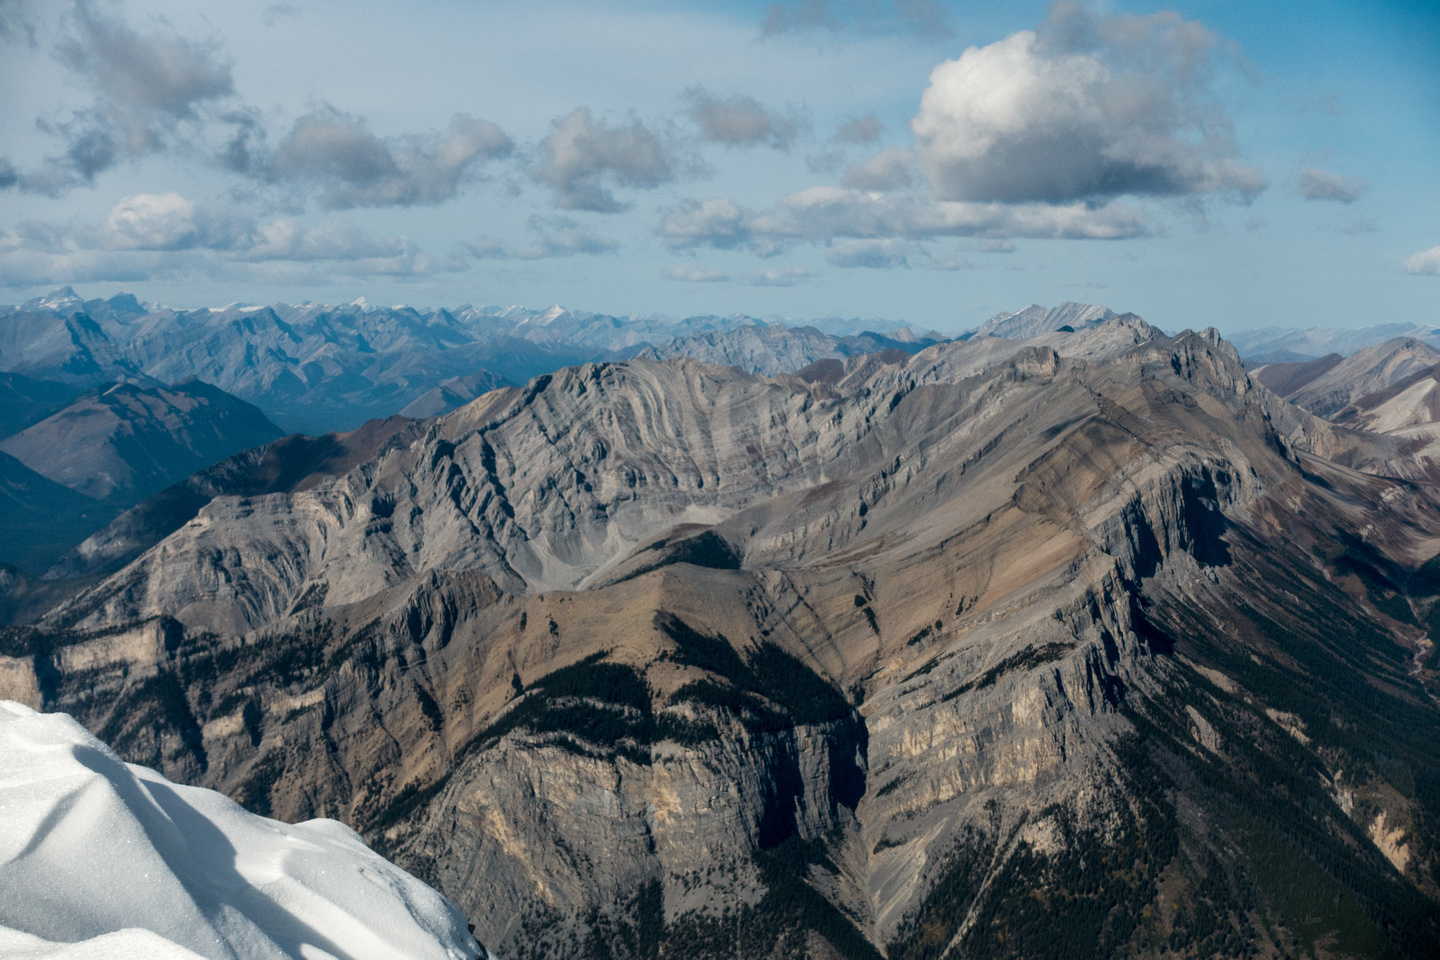 Looking over Spectral Peak and the Sawback Range.